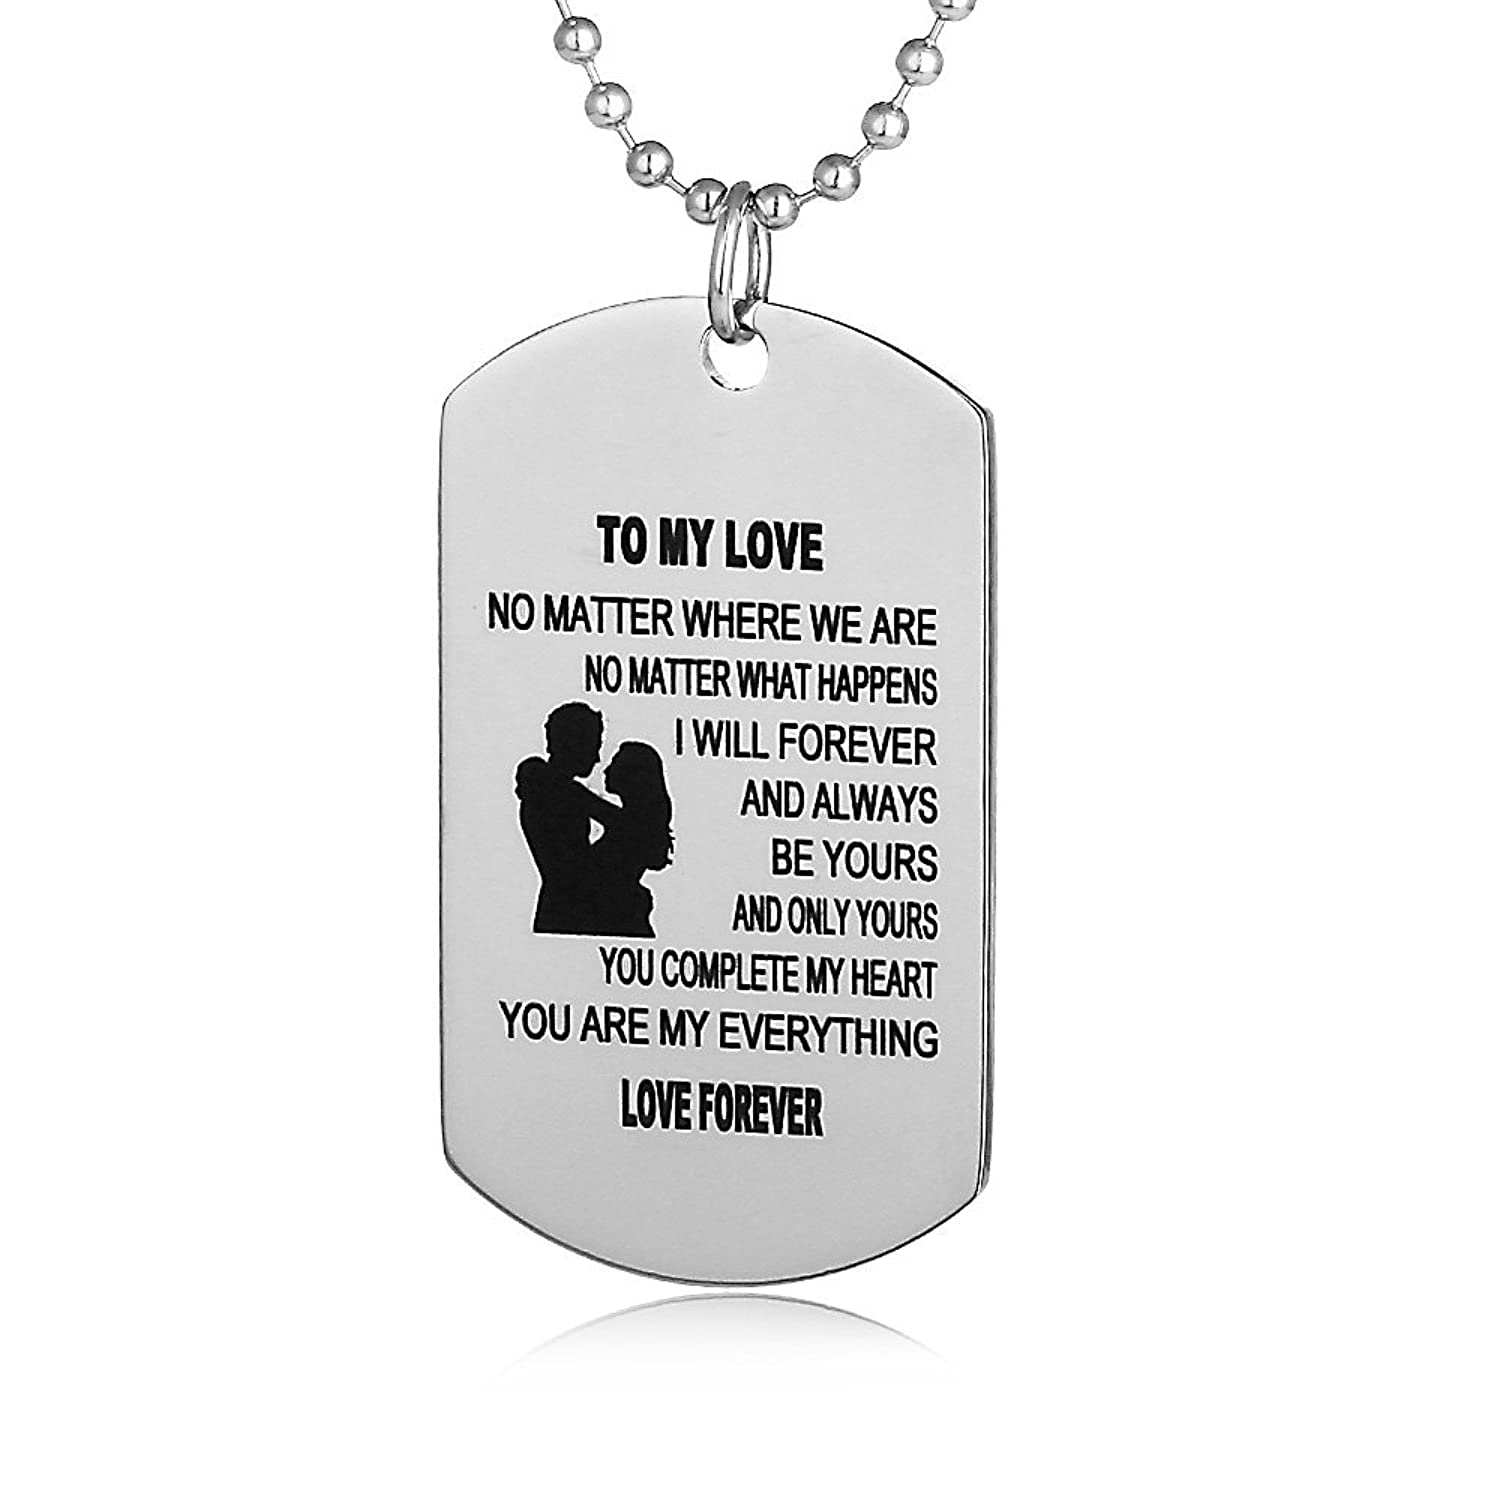 million valentines husband valentine special for and in wife necklace a one front s edition products